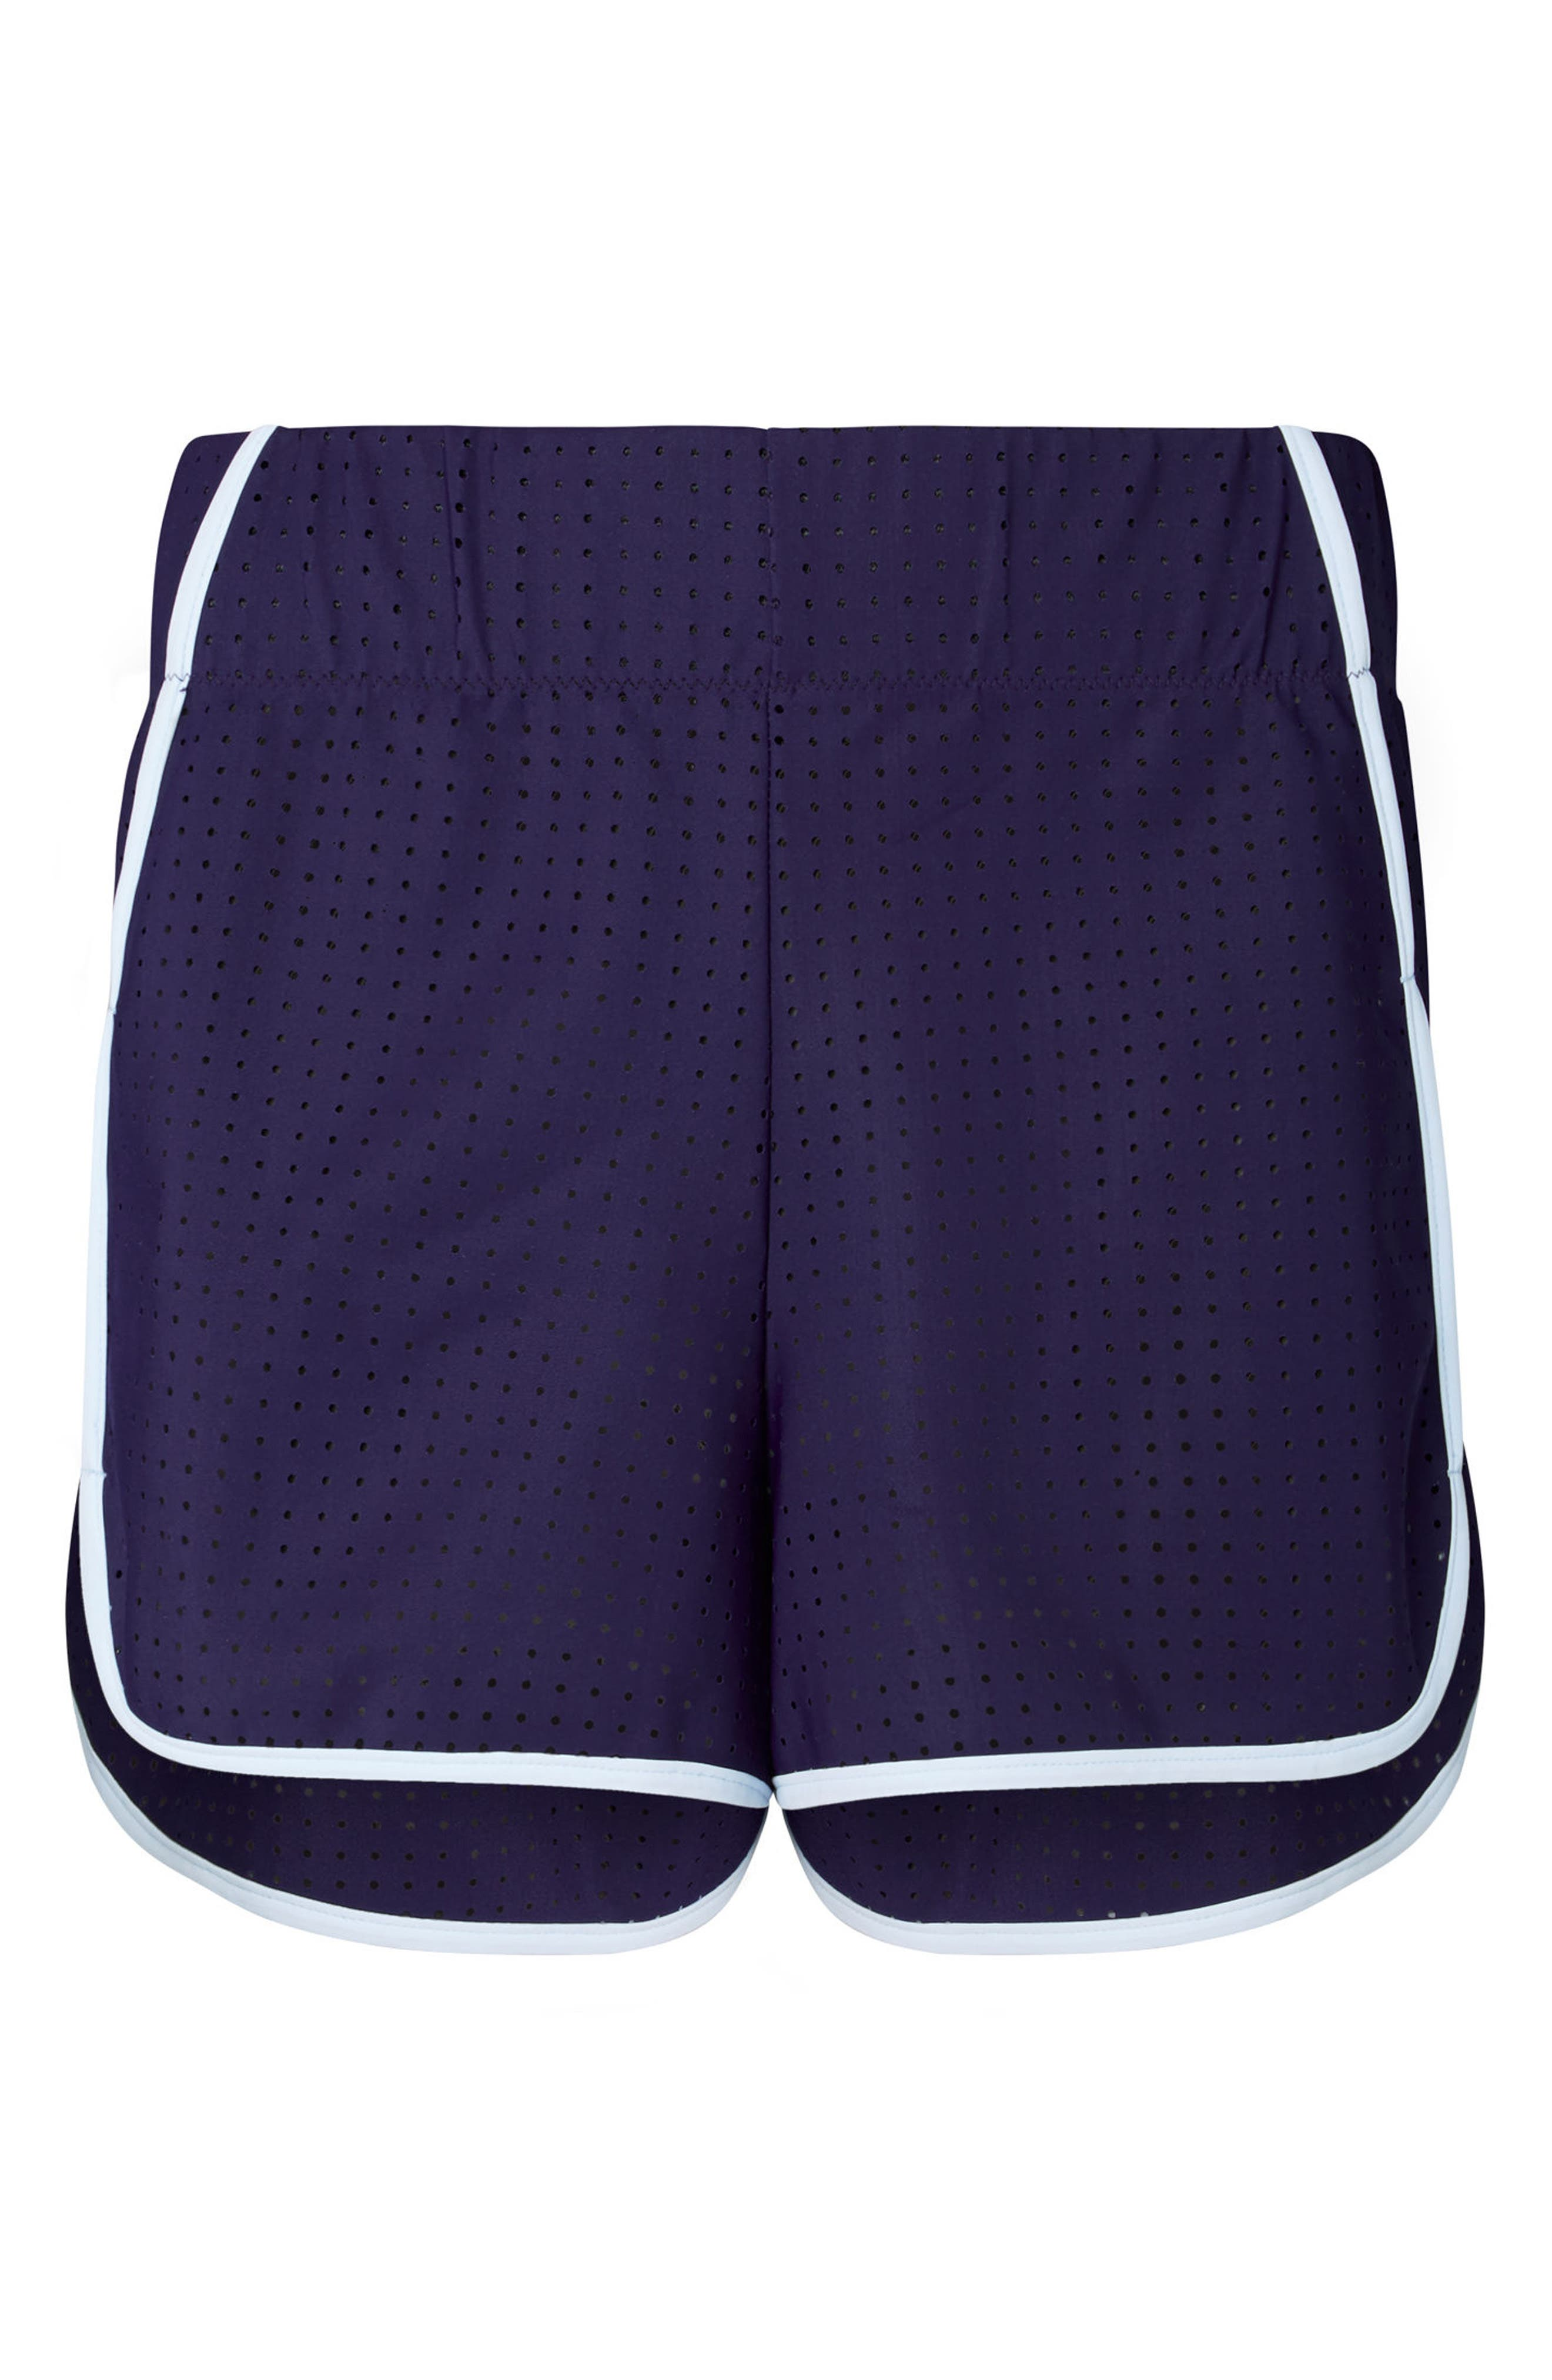 High Waist Track Shorts,                             Alternate thumbnail 5, color,                             Navy